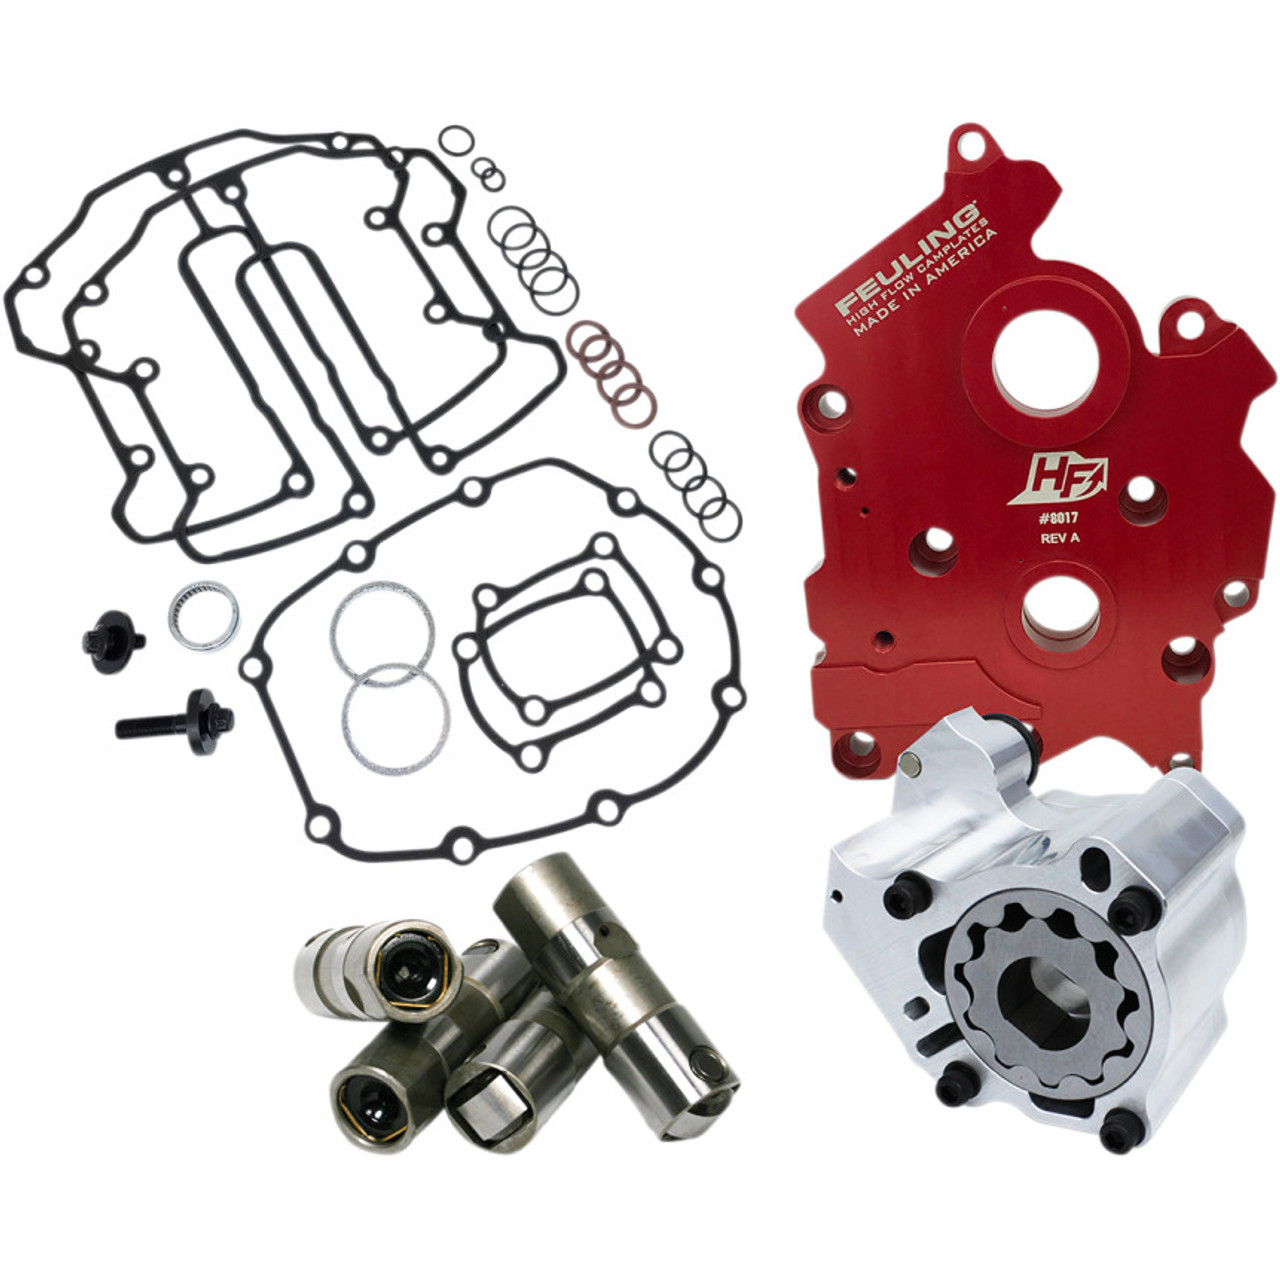 Feuling HP+ Series Oil System Kit for Harley Milwaukee 8